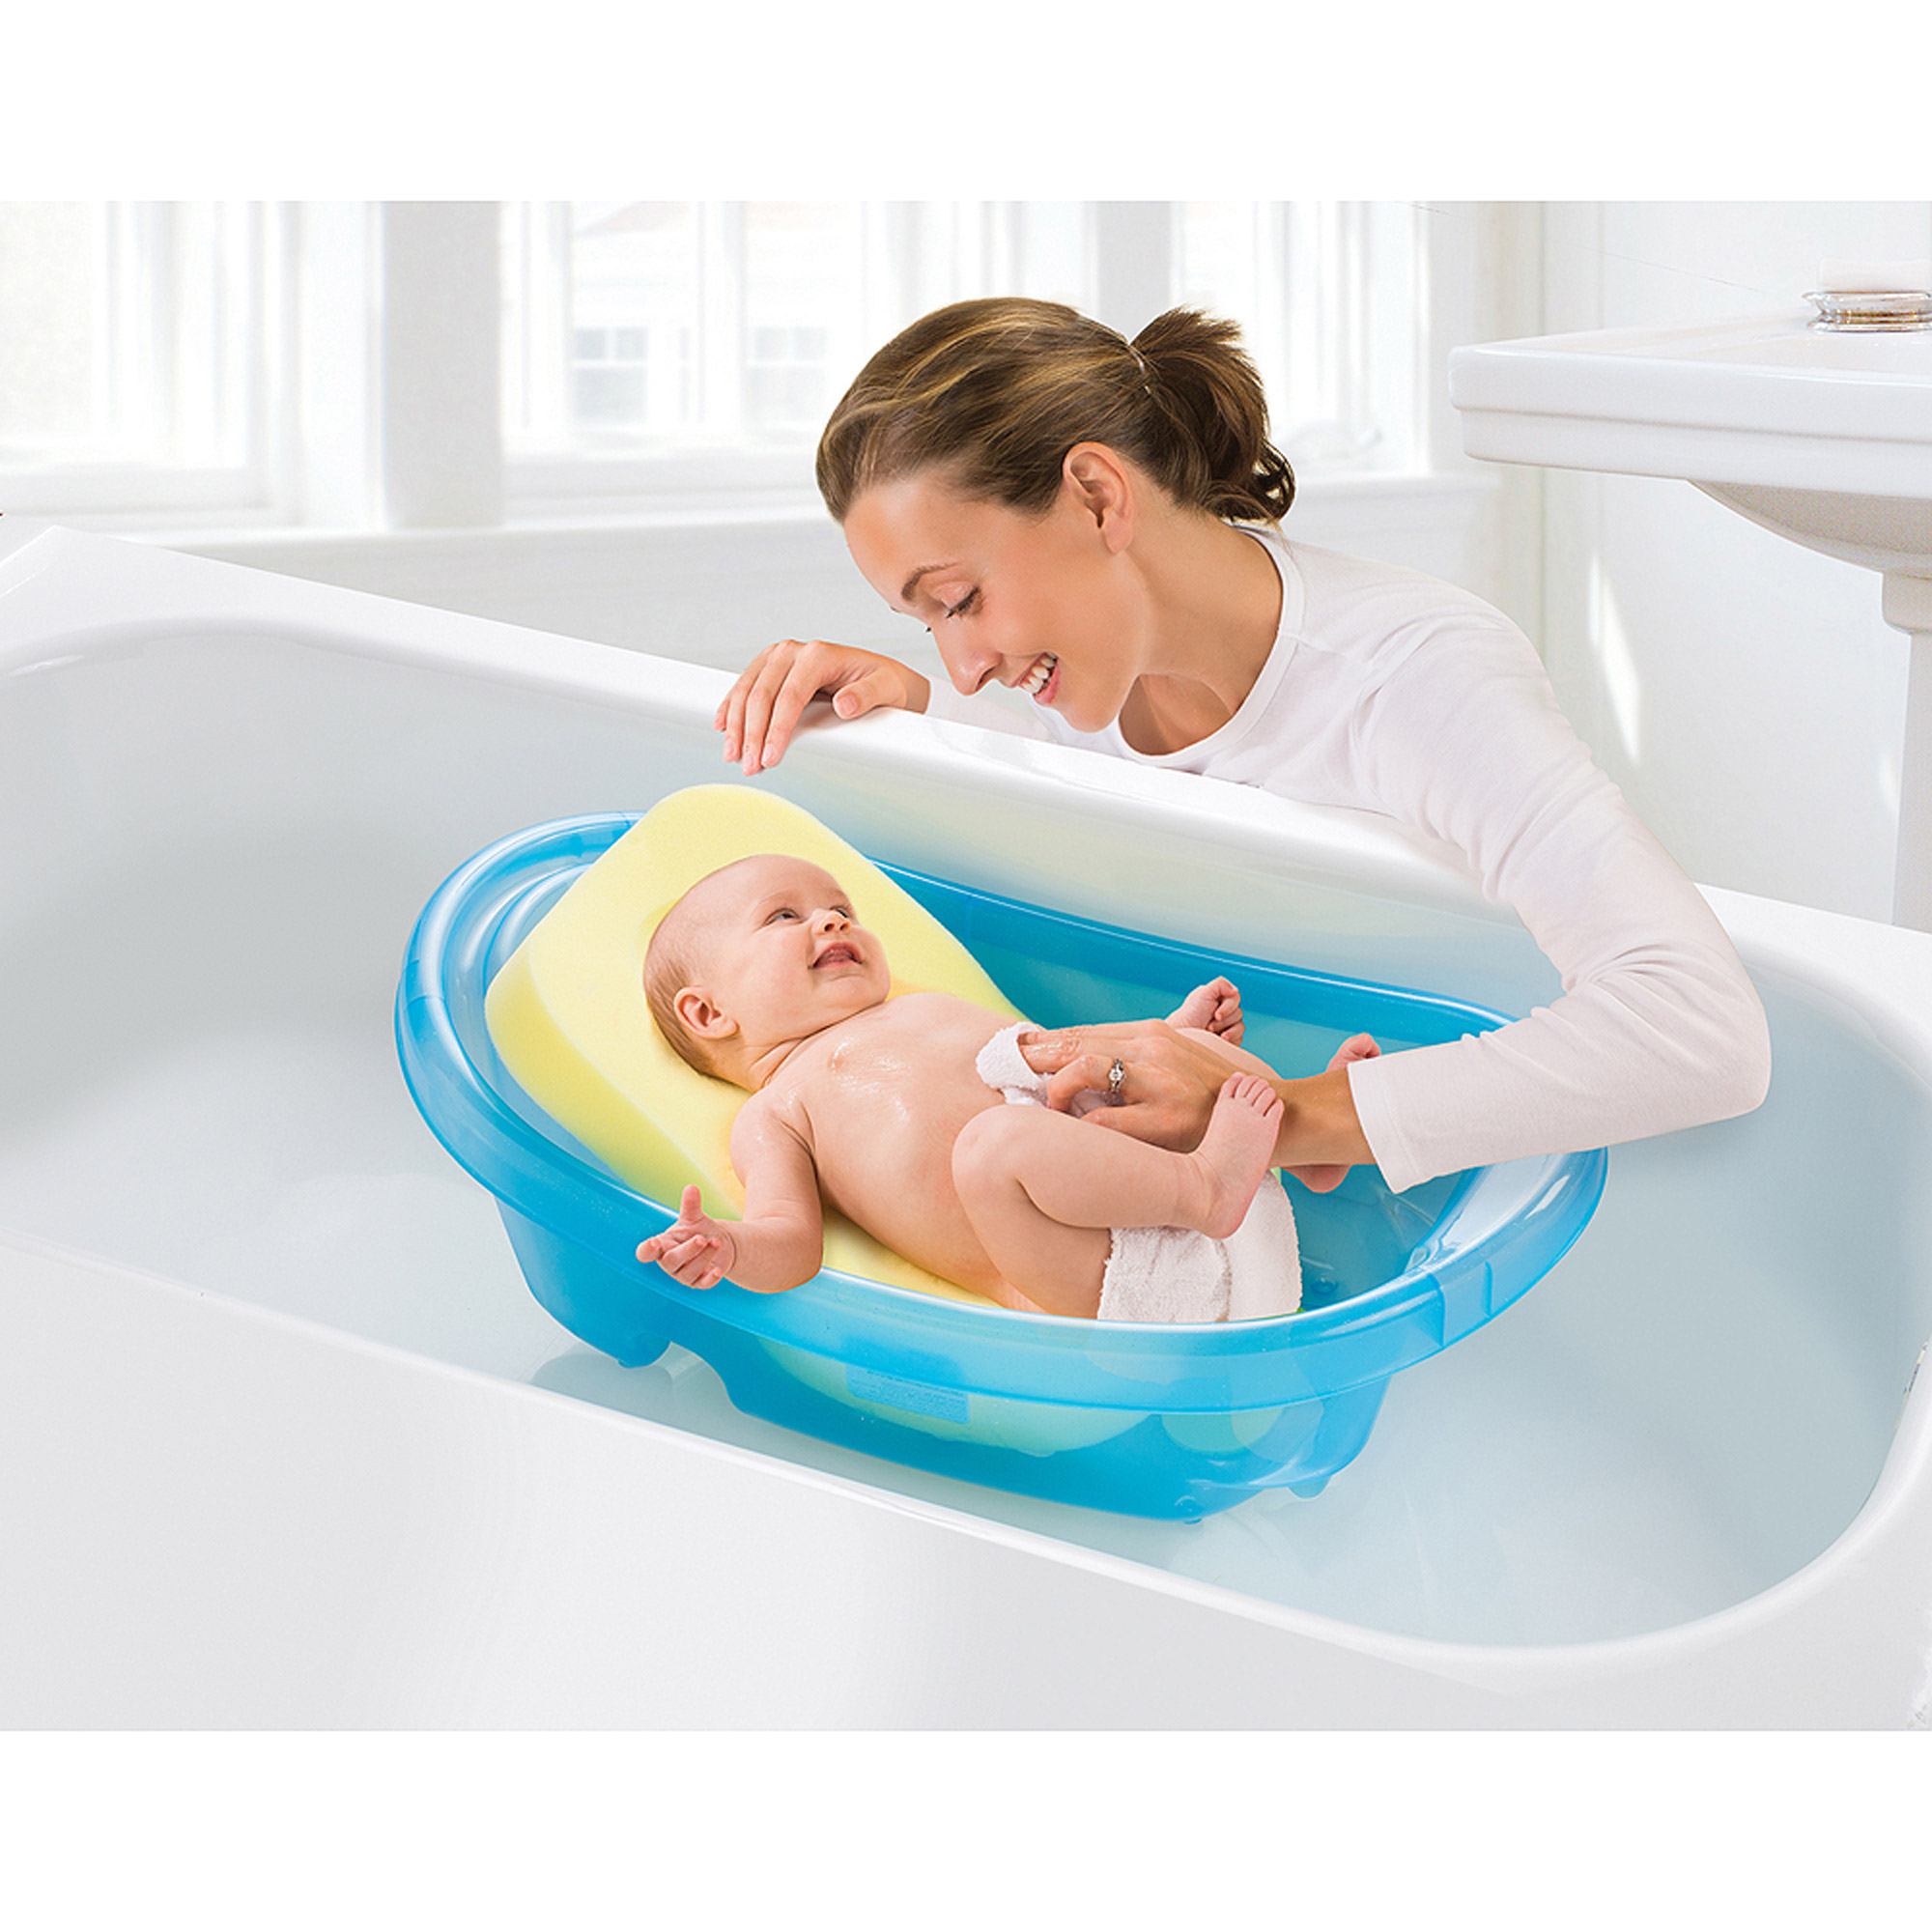 summer infant comfy bath sponge - walmart